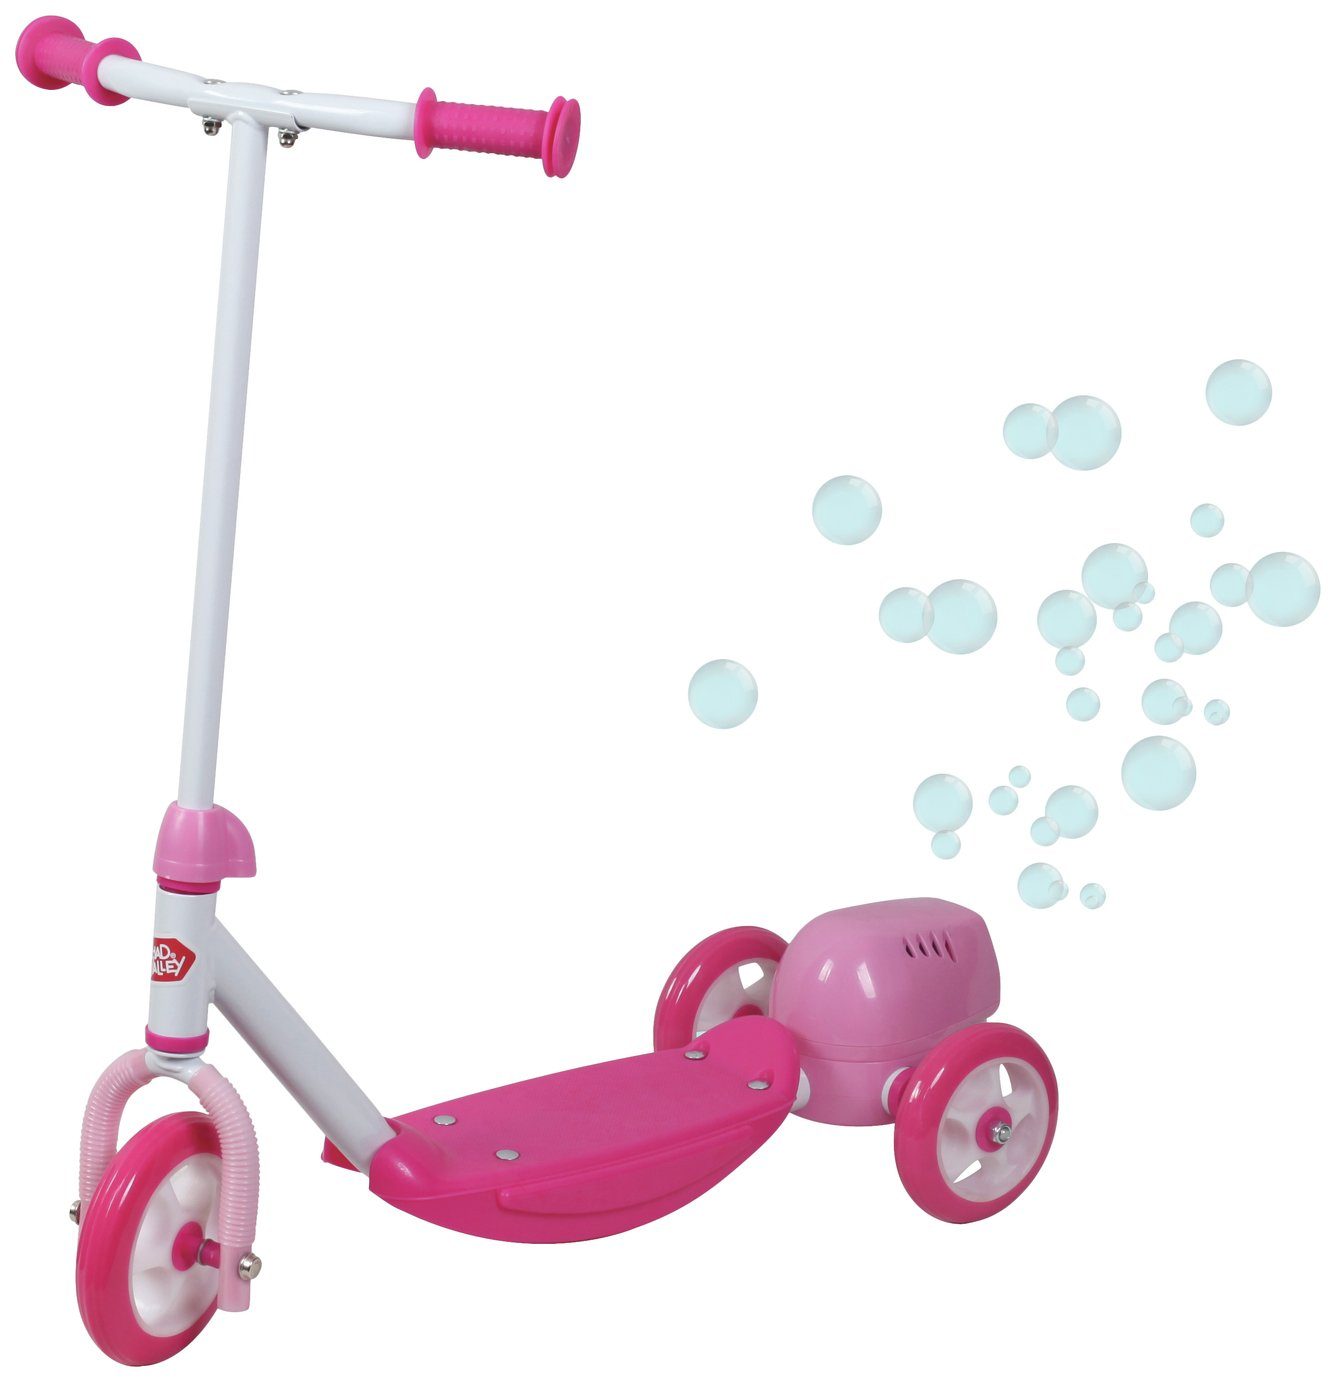 Buy Chad Valley Bubble Scooter 2 For 30 Pounds On Toys Argos